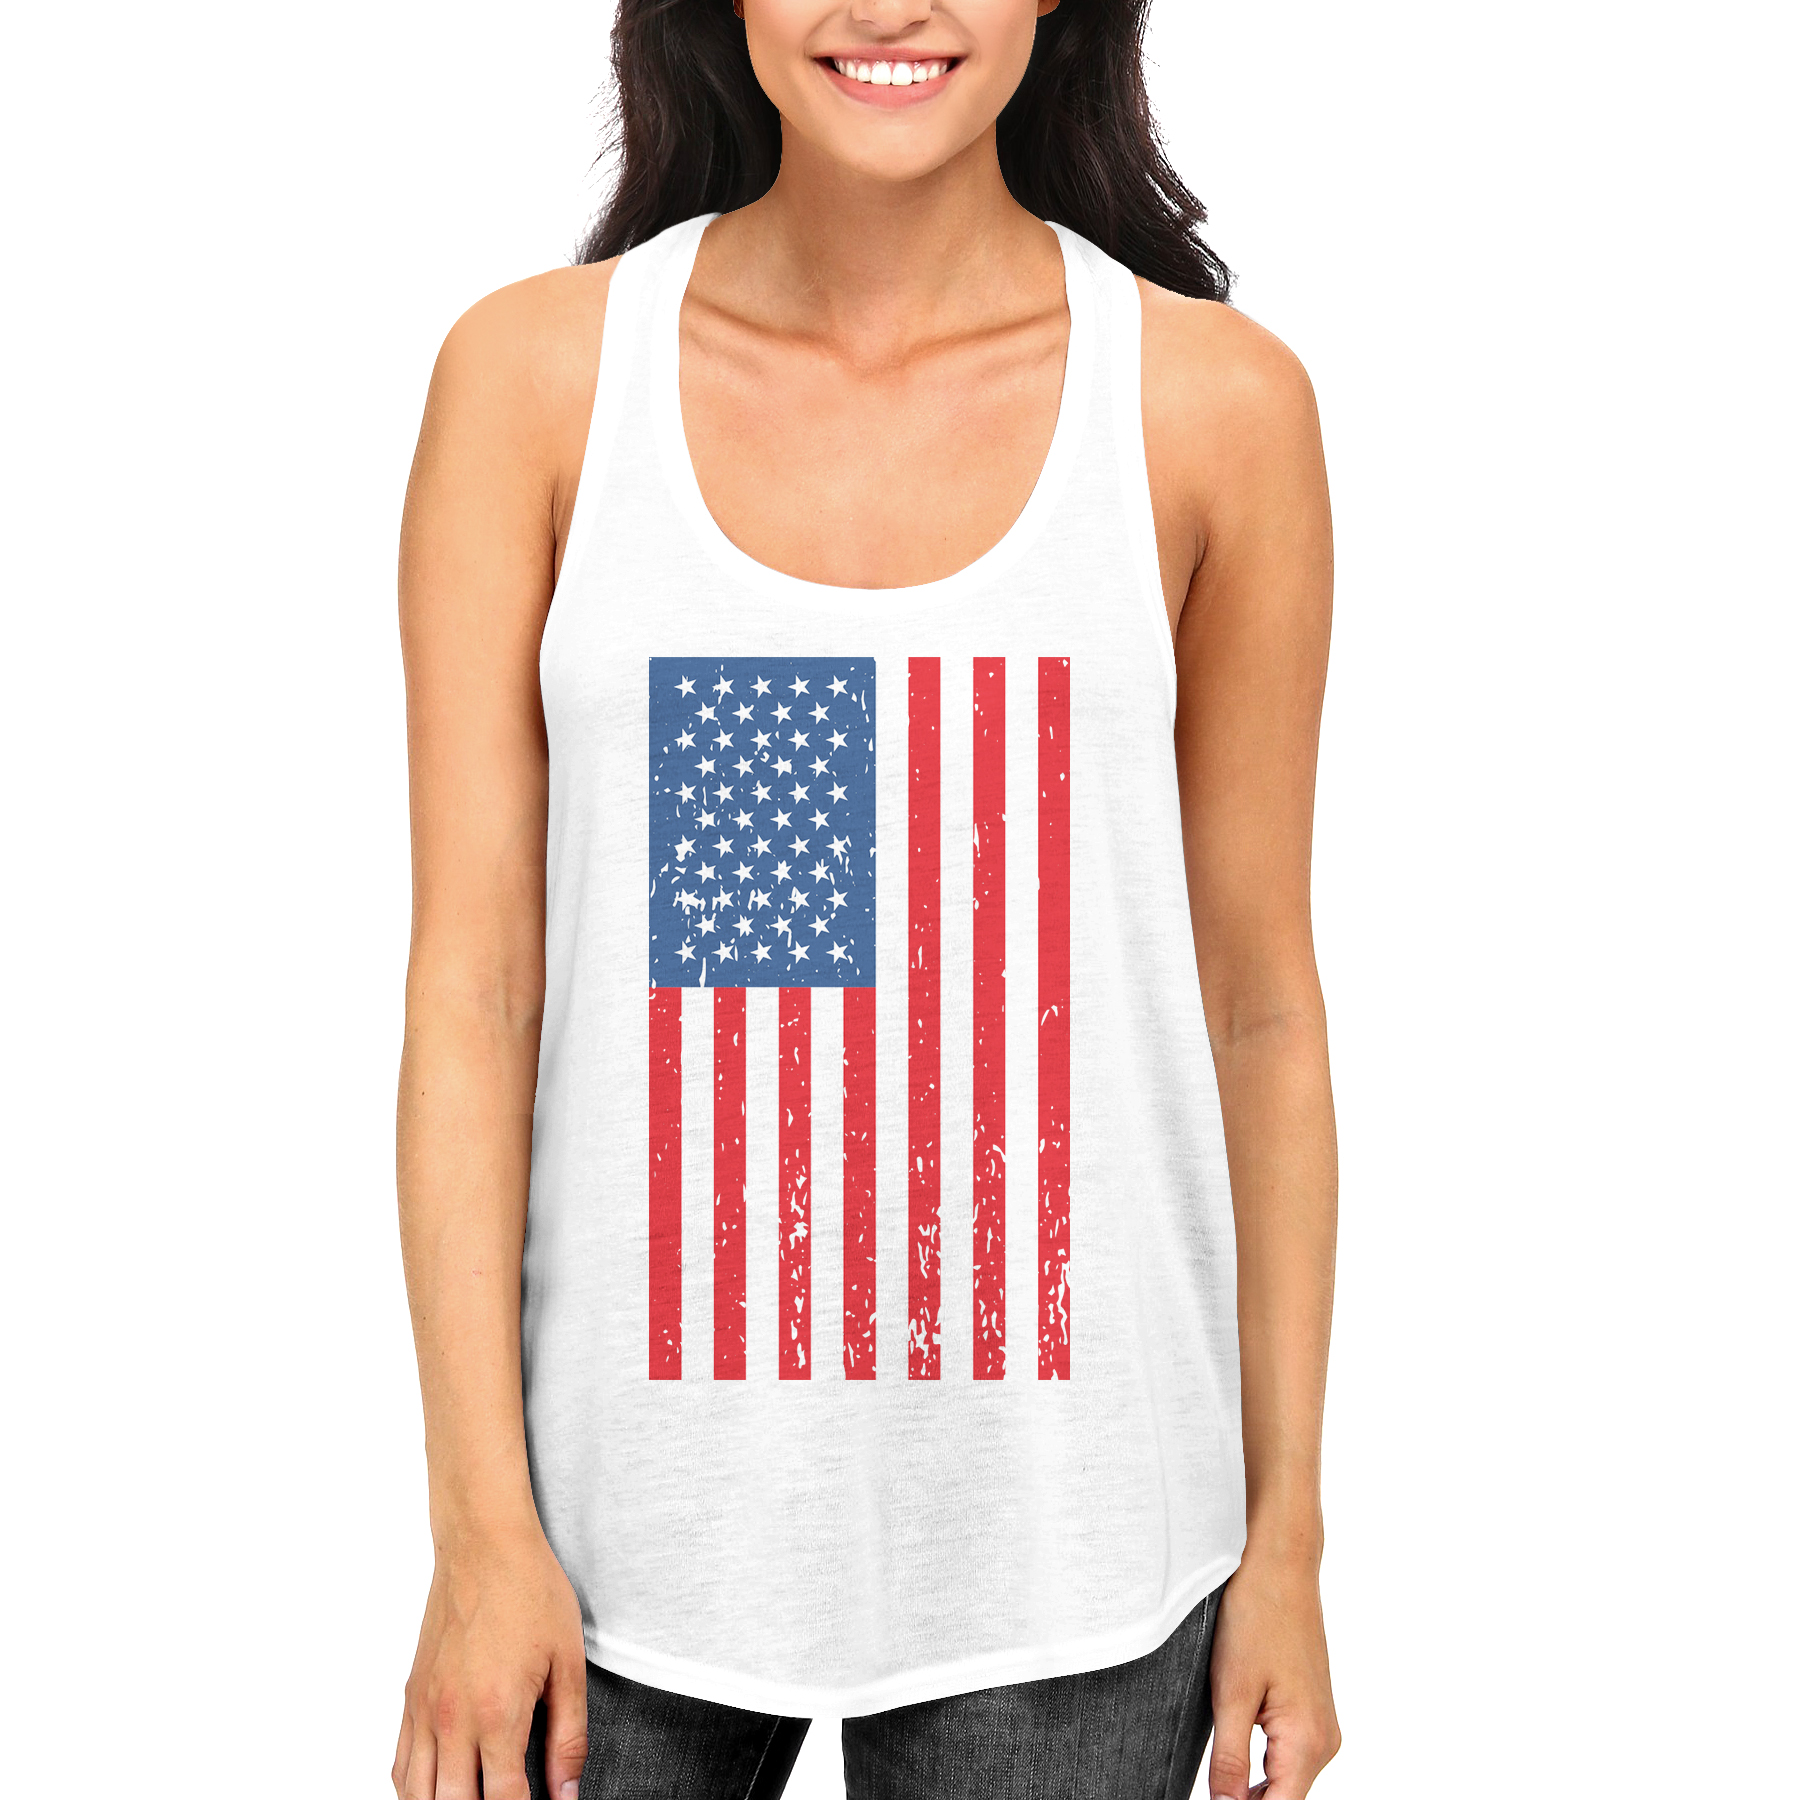 American Flag Cute independence Day RacerBack for Women Fourth of july Tank Top